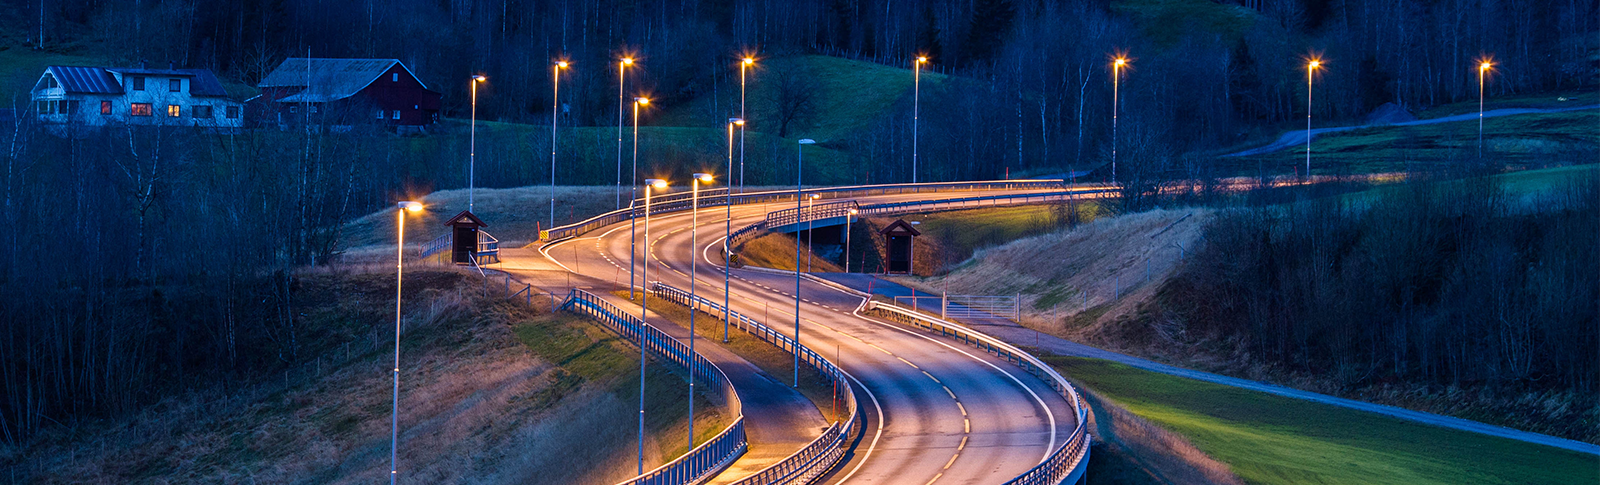 We offer high-quality road safety solutions for authorities and contractors